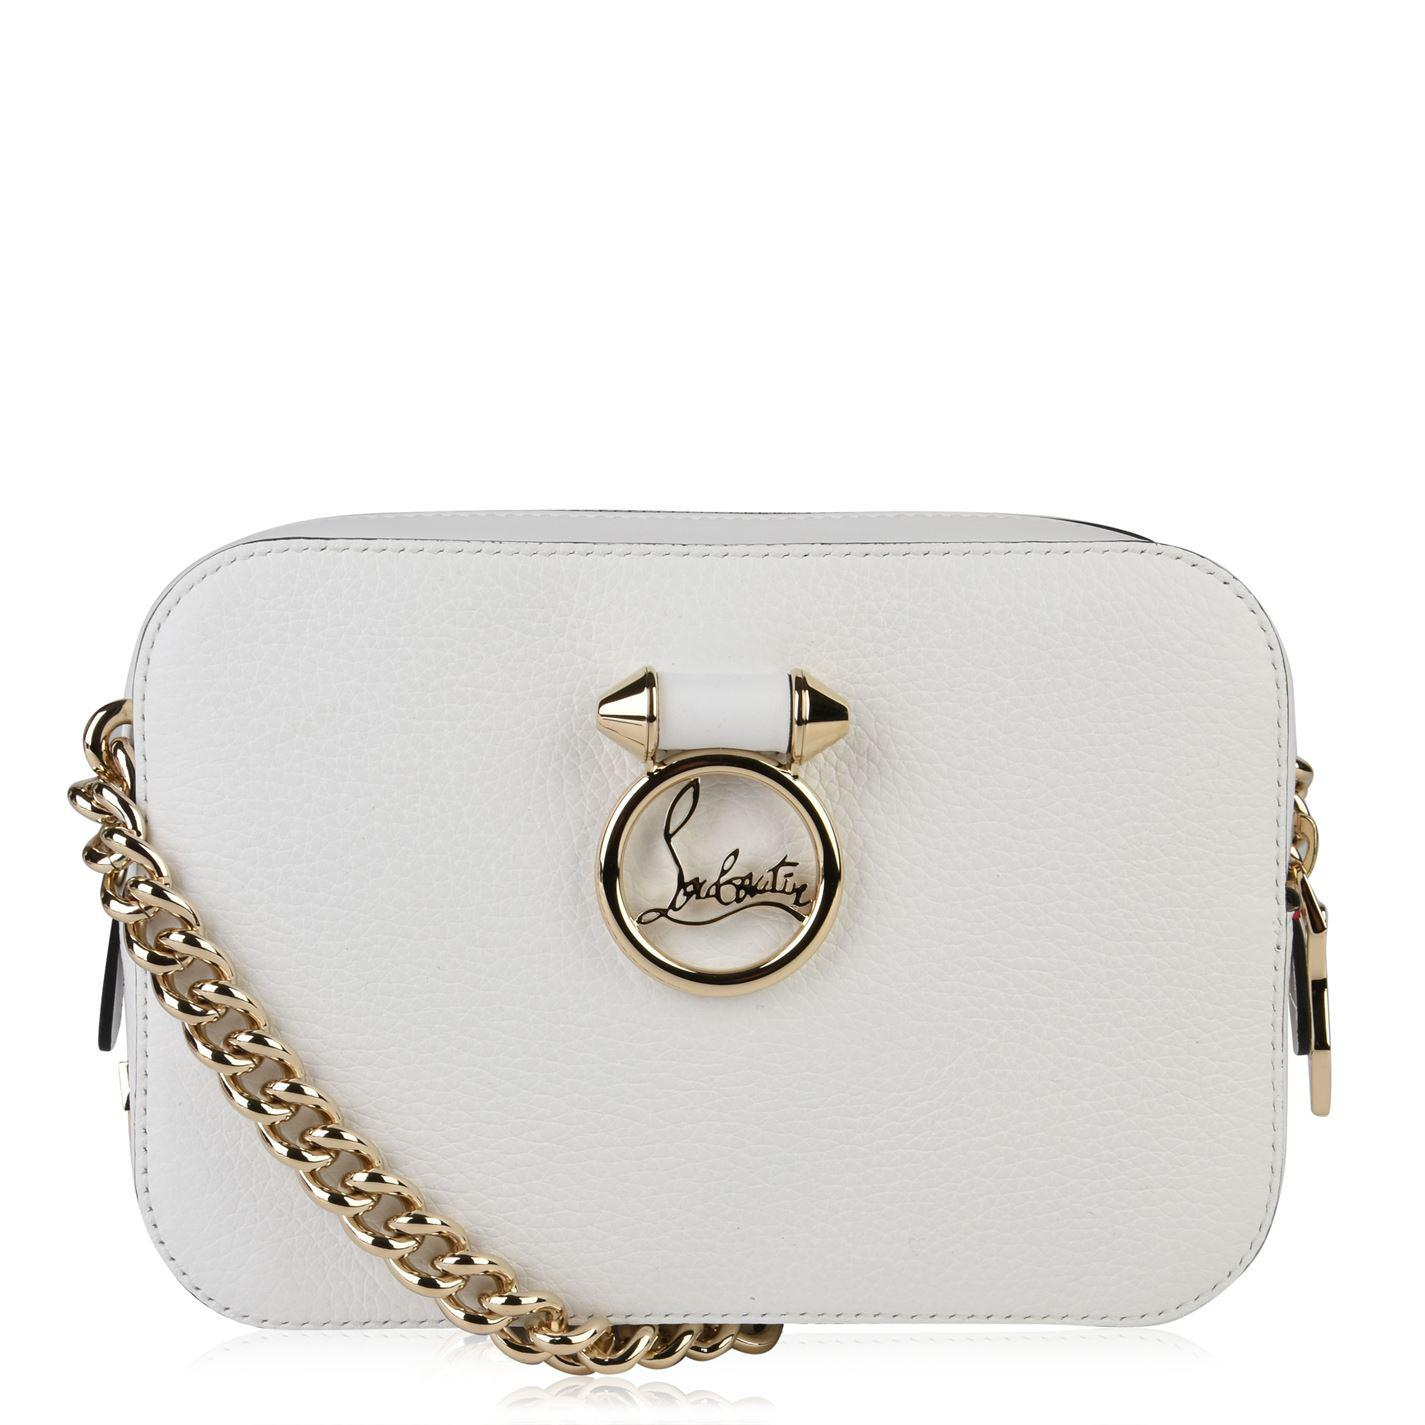 cc8446db704 Christian Louboutin Ruby Mini Shoulder Bag in White - Lyst